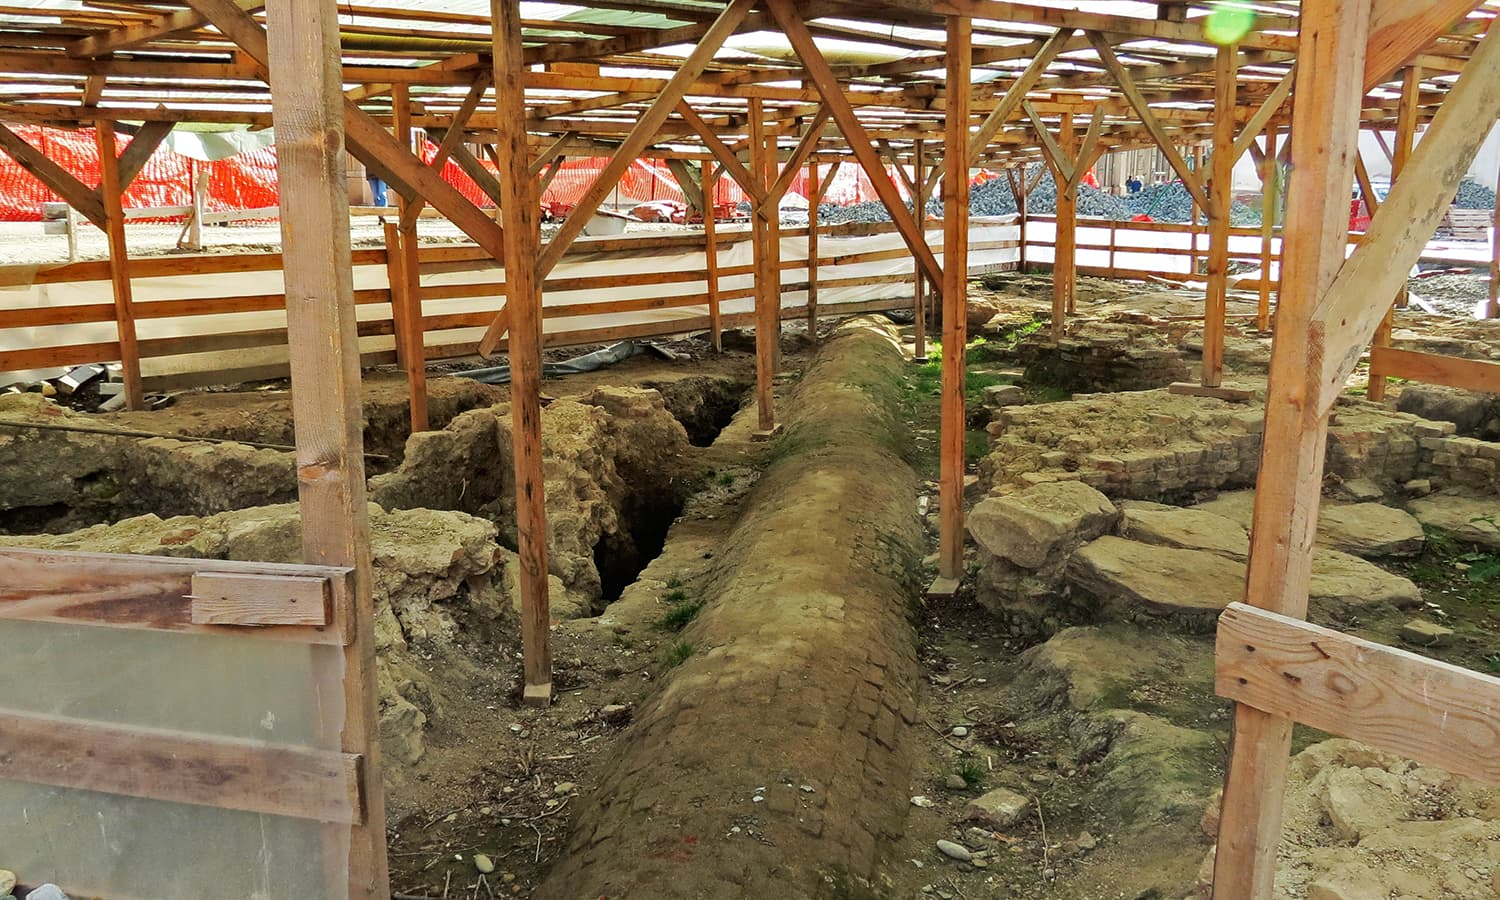 Uncovered area of the Turkish bath discovered under Liberty Square. Photo by Urooj Qureshi